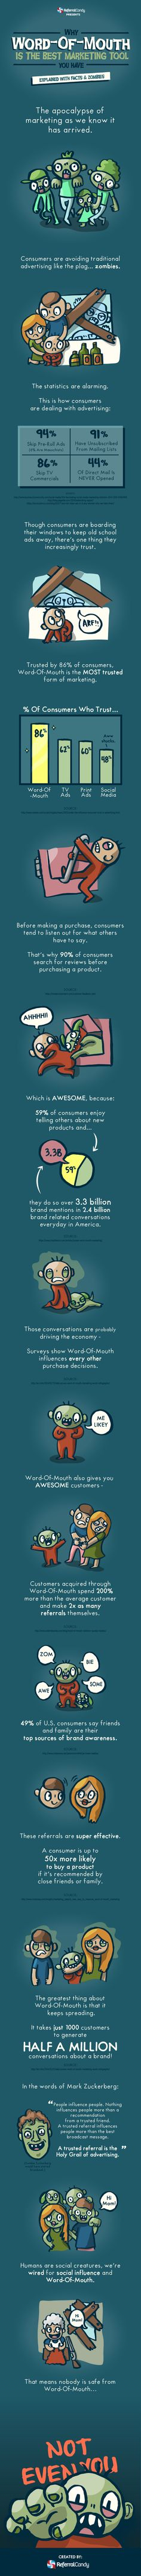 Why Word-Of-Mouth Is The Best Marketing Tool You Have #infographic #Marketing